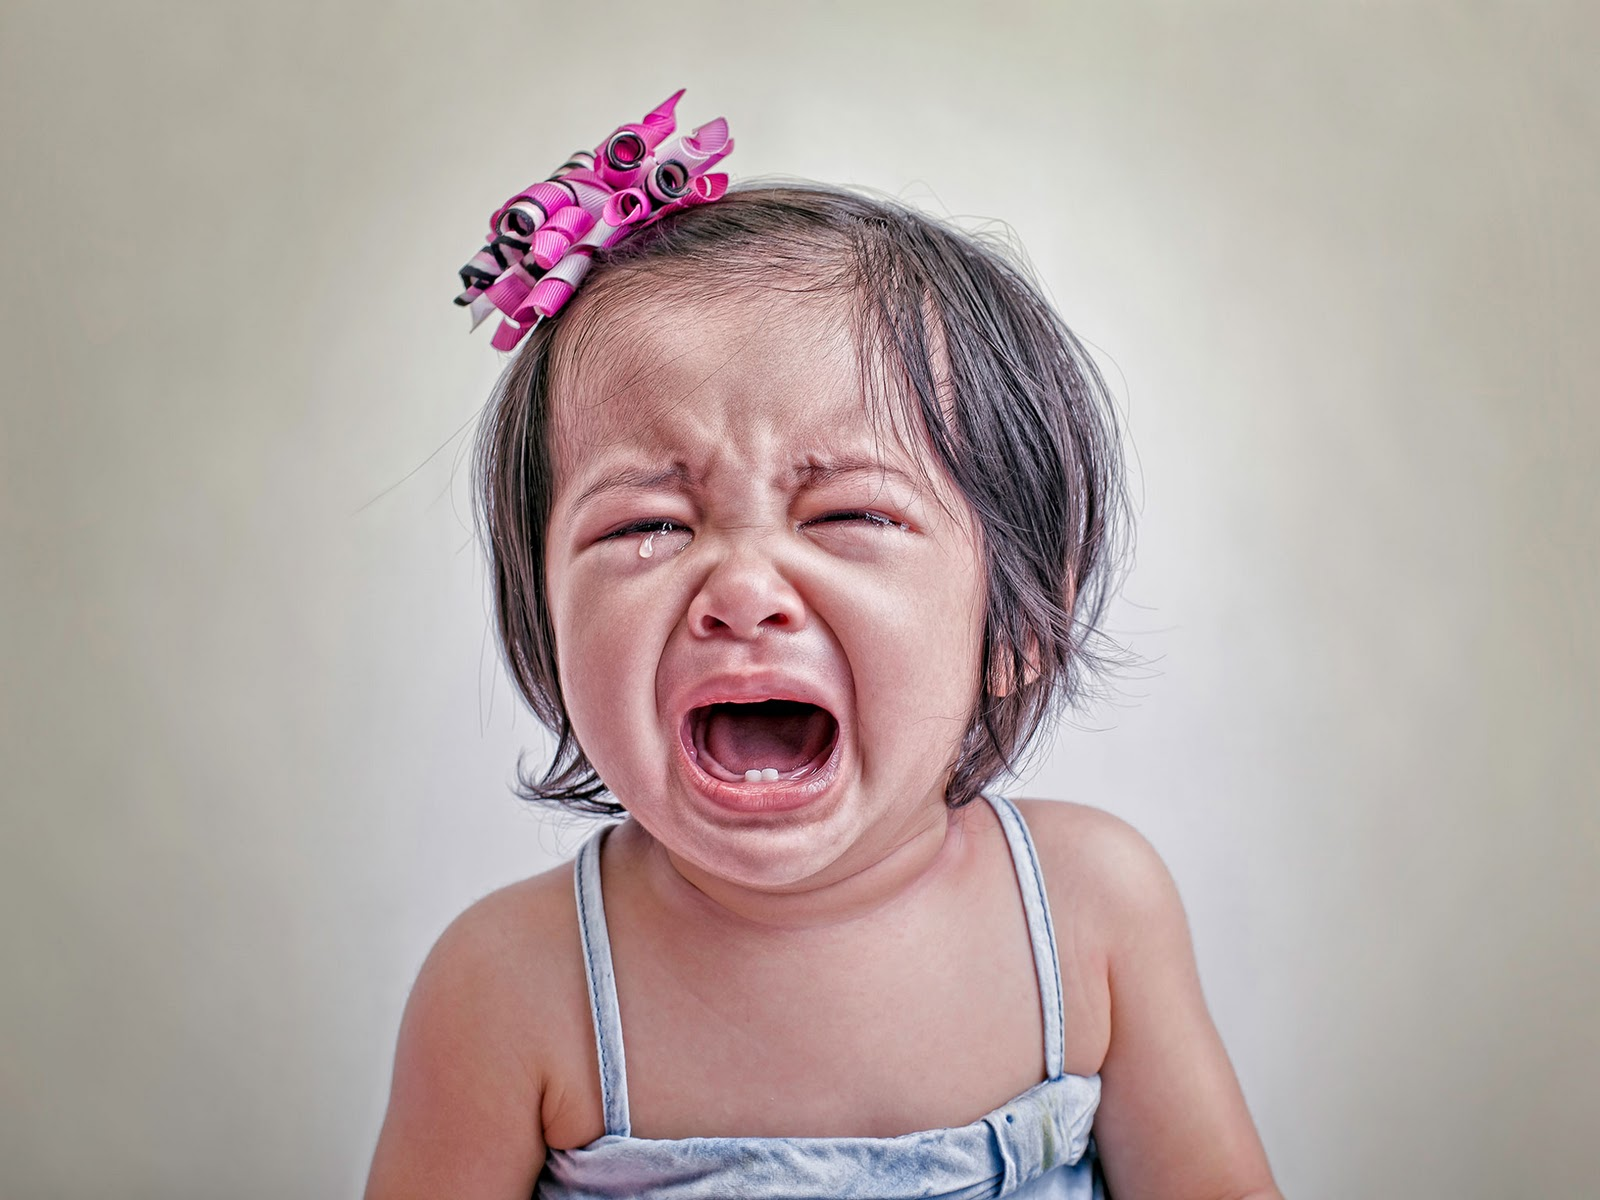 Sad Girl Crying Wallpaper Download Top 29 Wallpapers Of Sad And Crying Babies In Hd